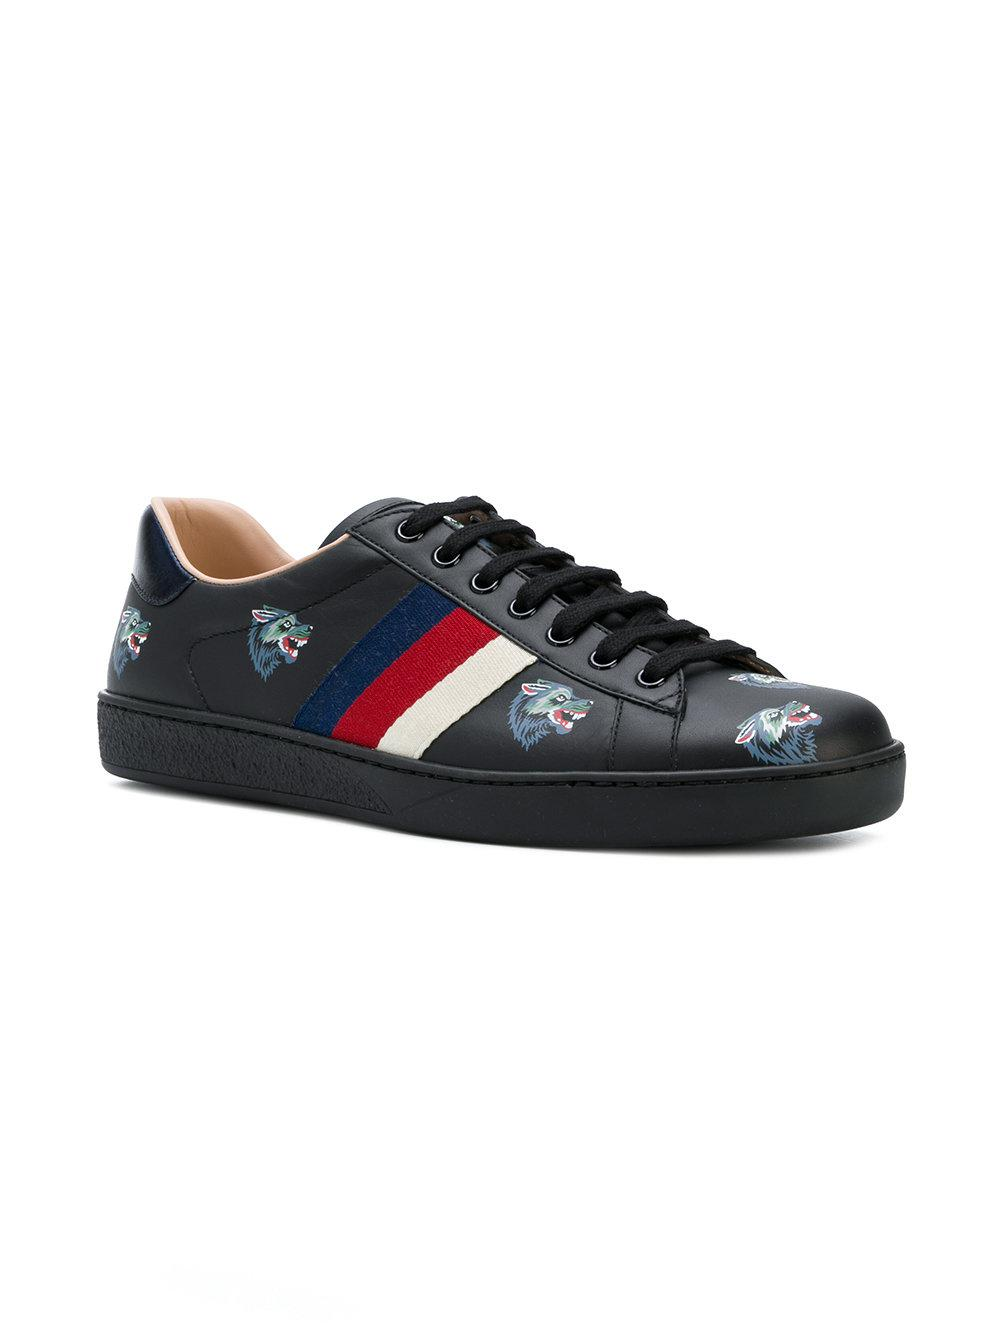 0e37153e440af Gucci Ace With Wolves Print Sneakers in Black for Men - Lyst